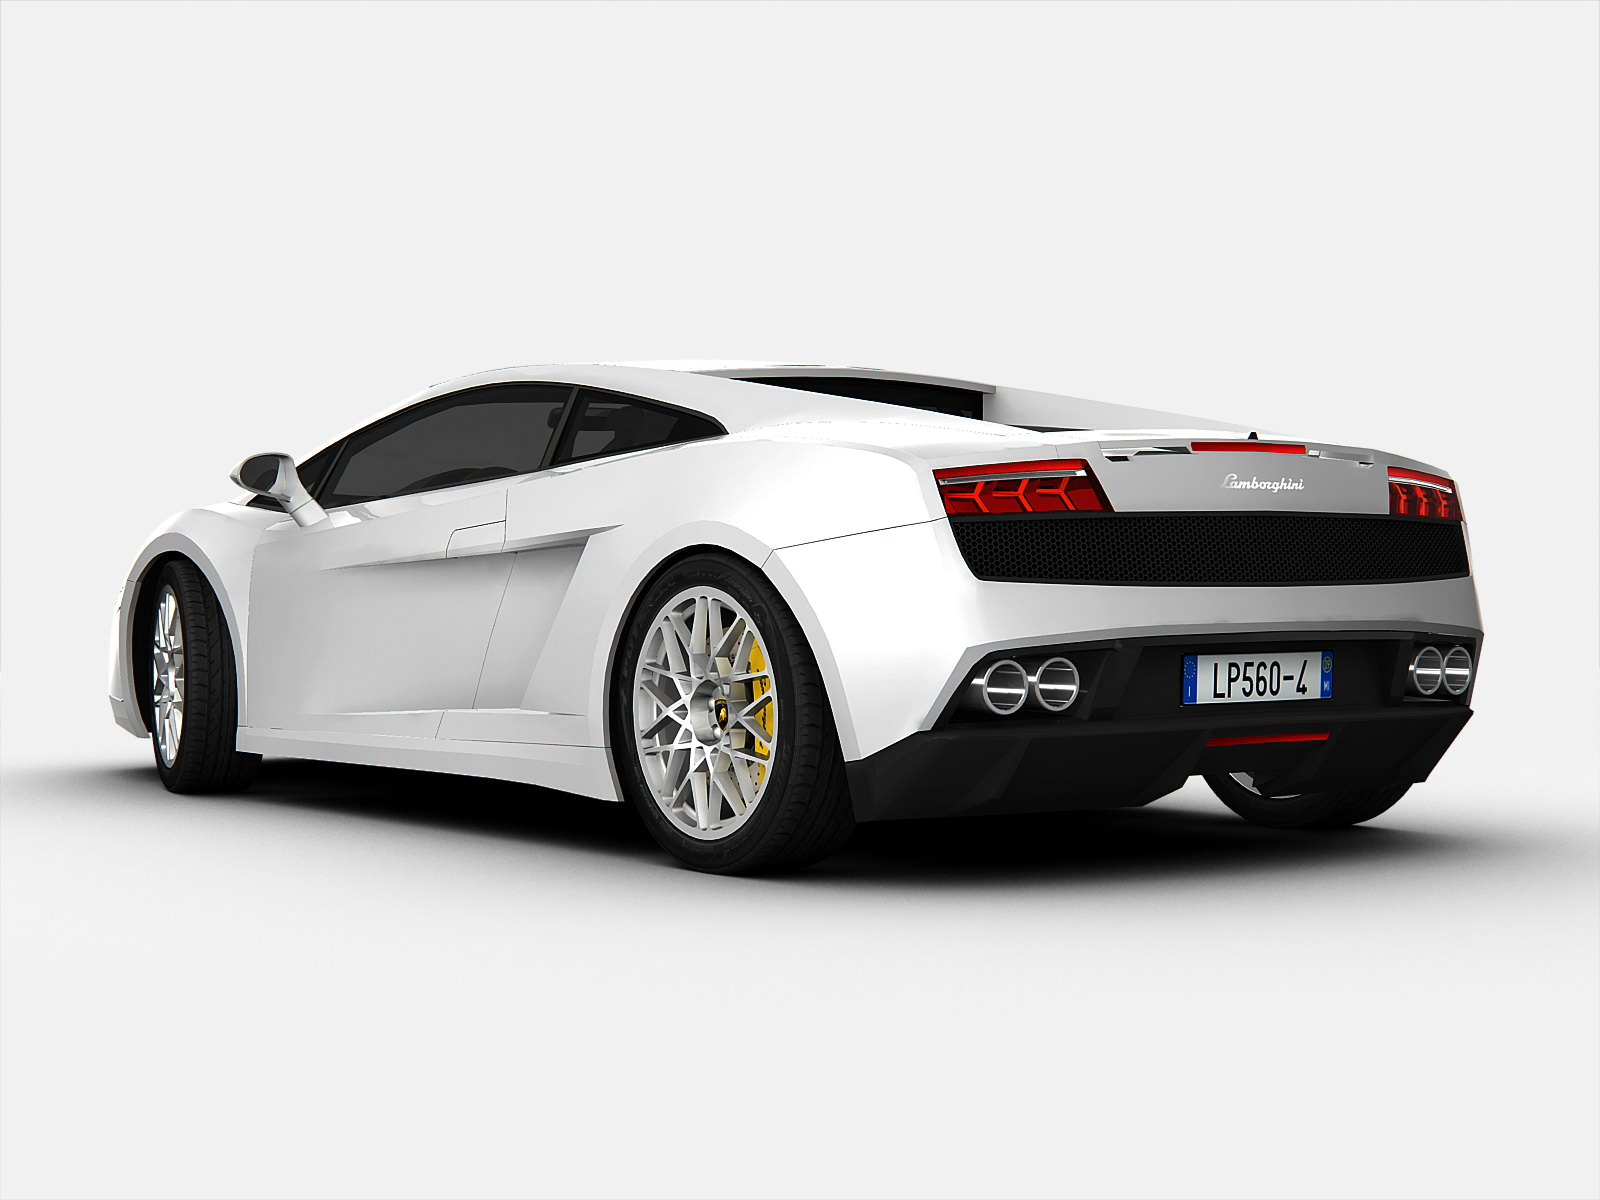 ... Lamborghini Gallardo Lp560 4 3d Model Max Obj 3ds C4d 2 ...